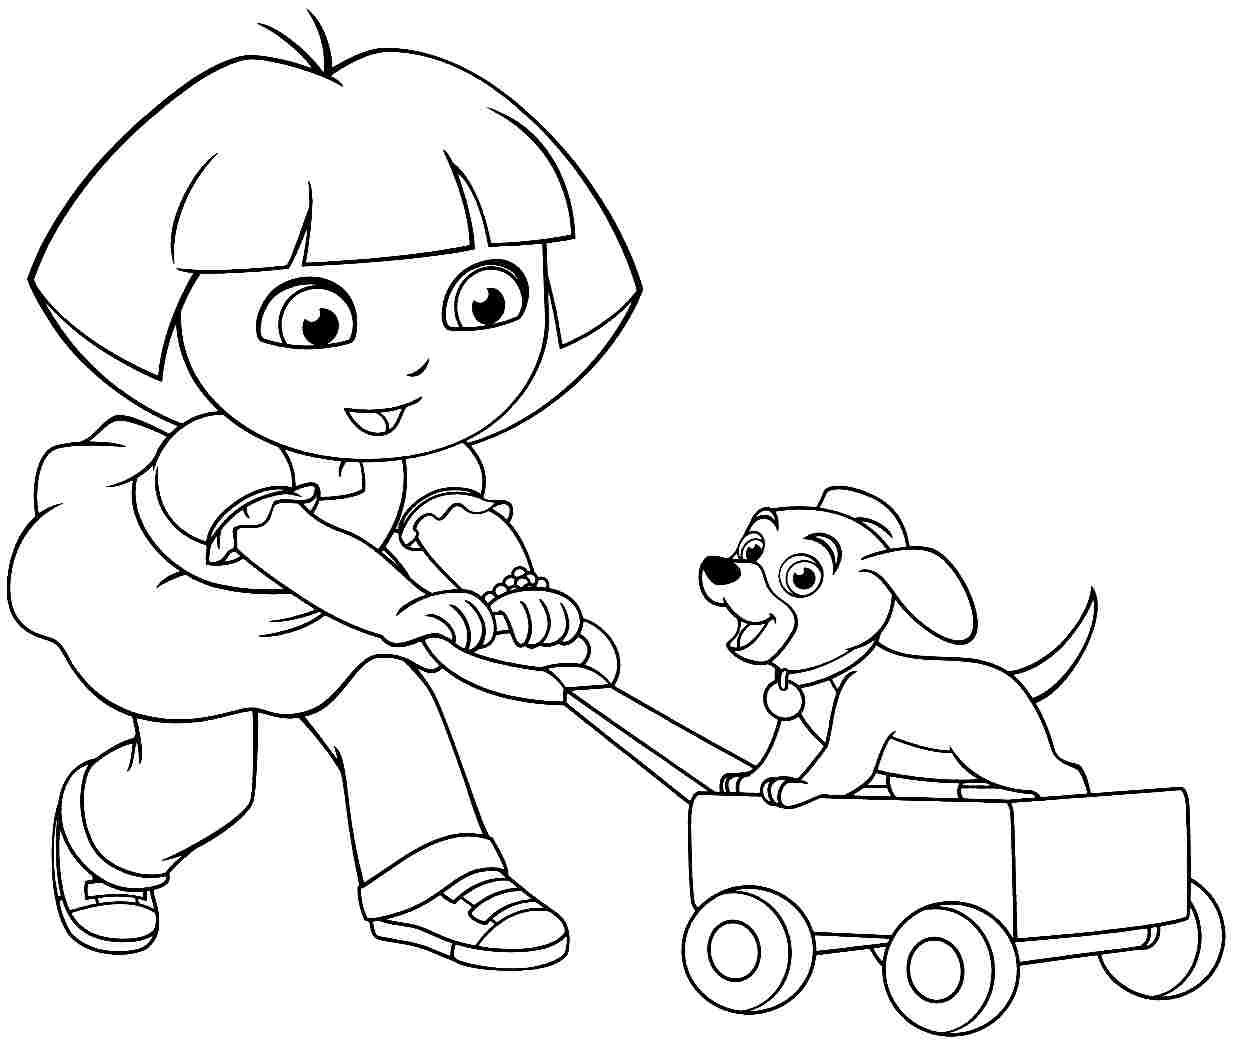 coloring pages dora and friends dora and friends coloring pages to download and print for free coloring and pages dora friends